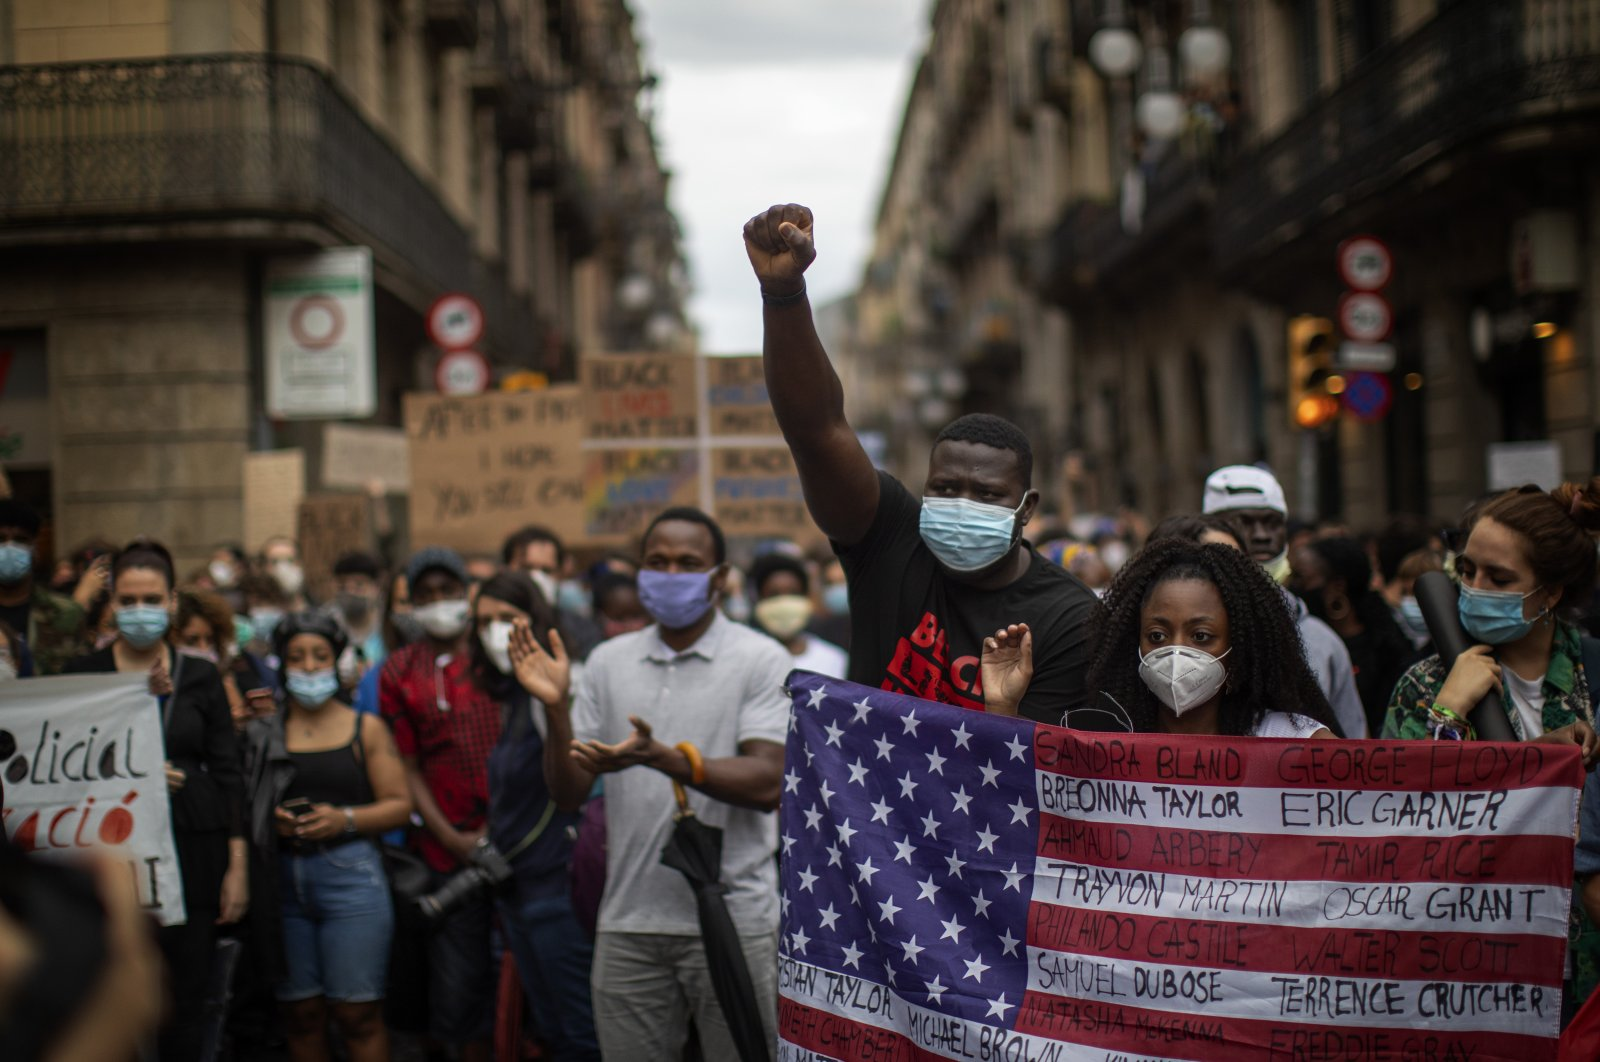 People gather during a demonstration over the death of George Floyd, Barcelona, Spain, June 7, 2020. (AP Photo)